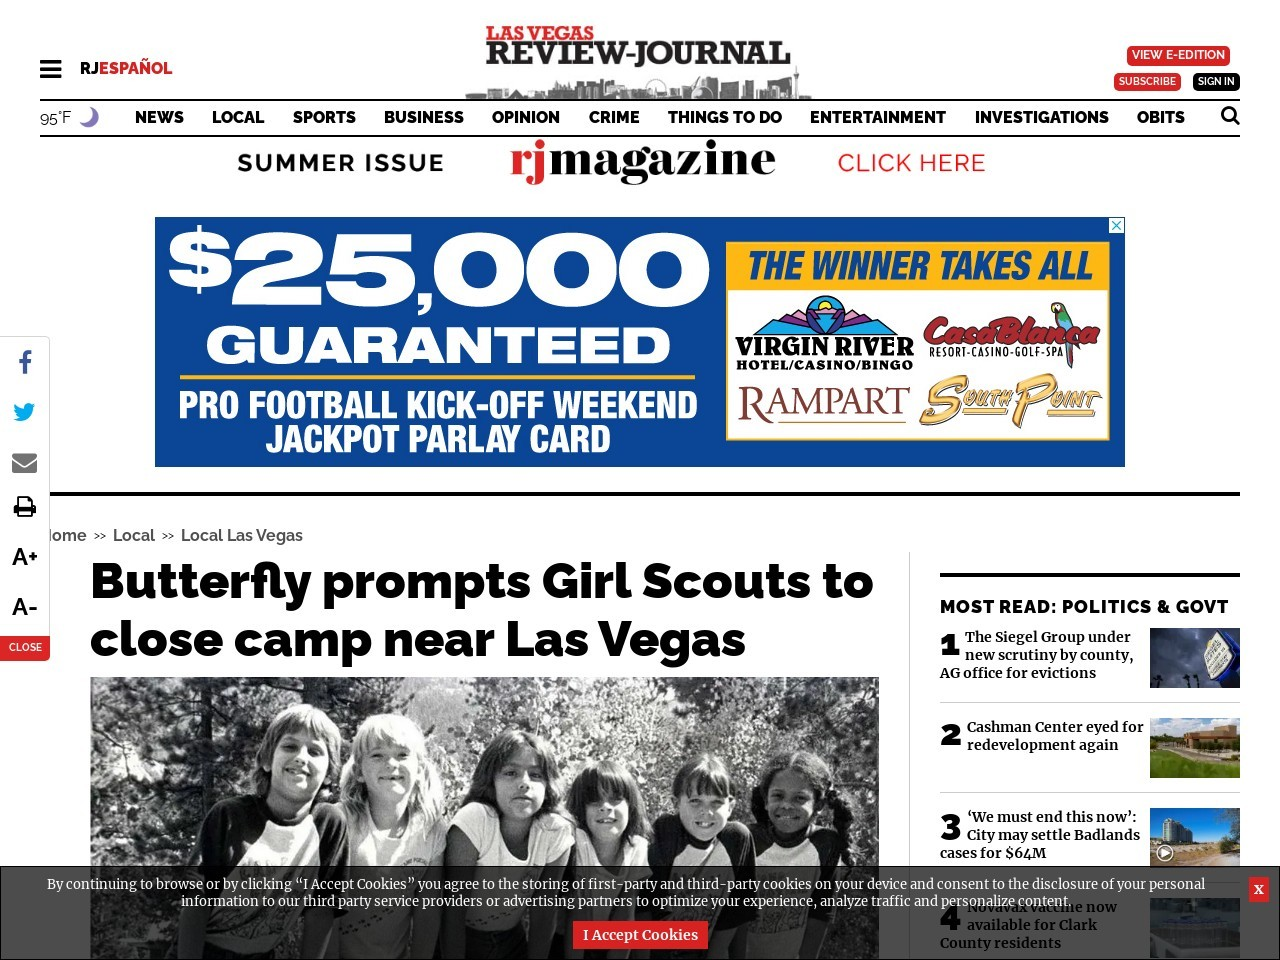 Butterfly prompts Girl Scouts to close camp near Las Vegas